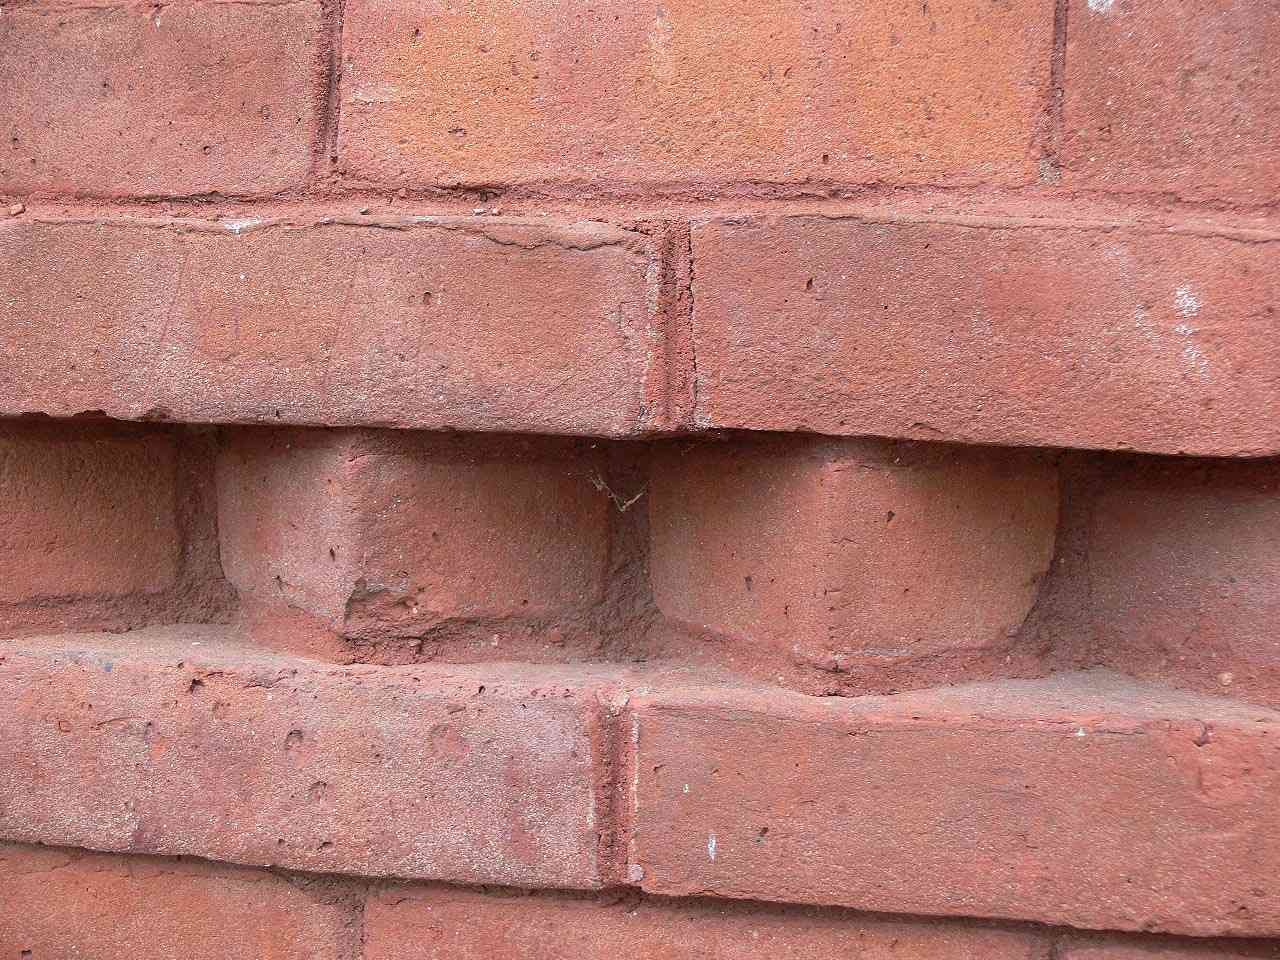 A row of bricks set at angles adds texture to the walls of Mark Twain's Connecticut home.